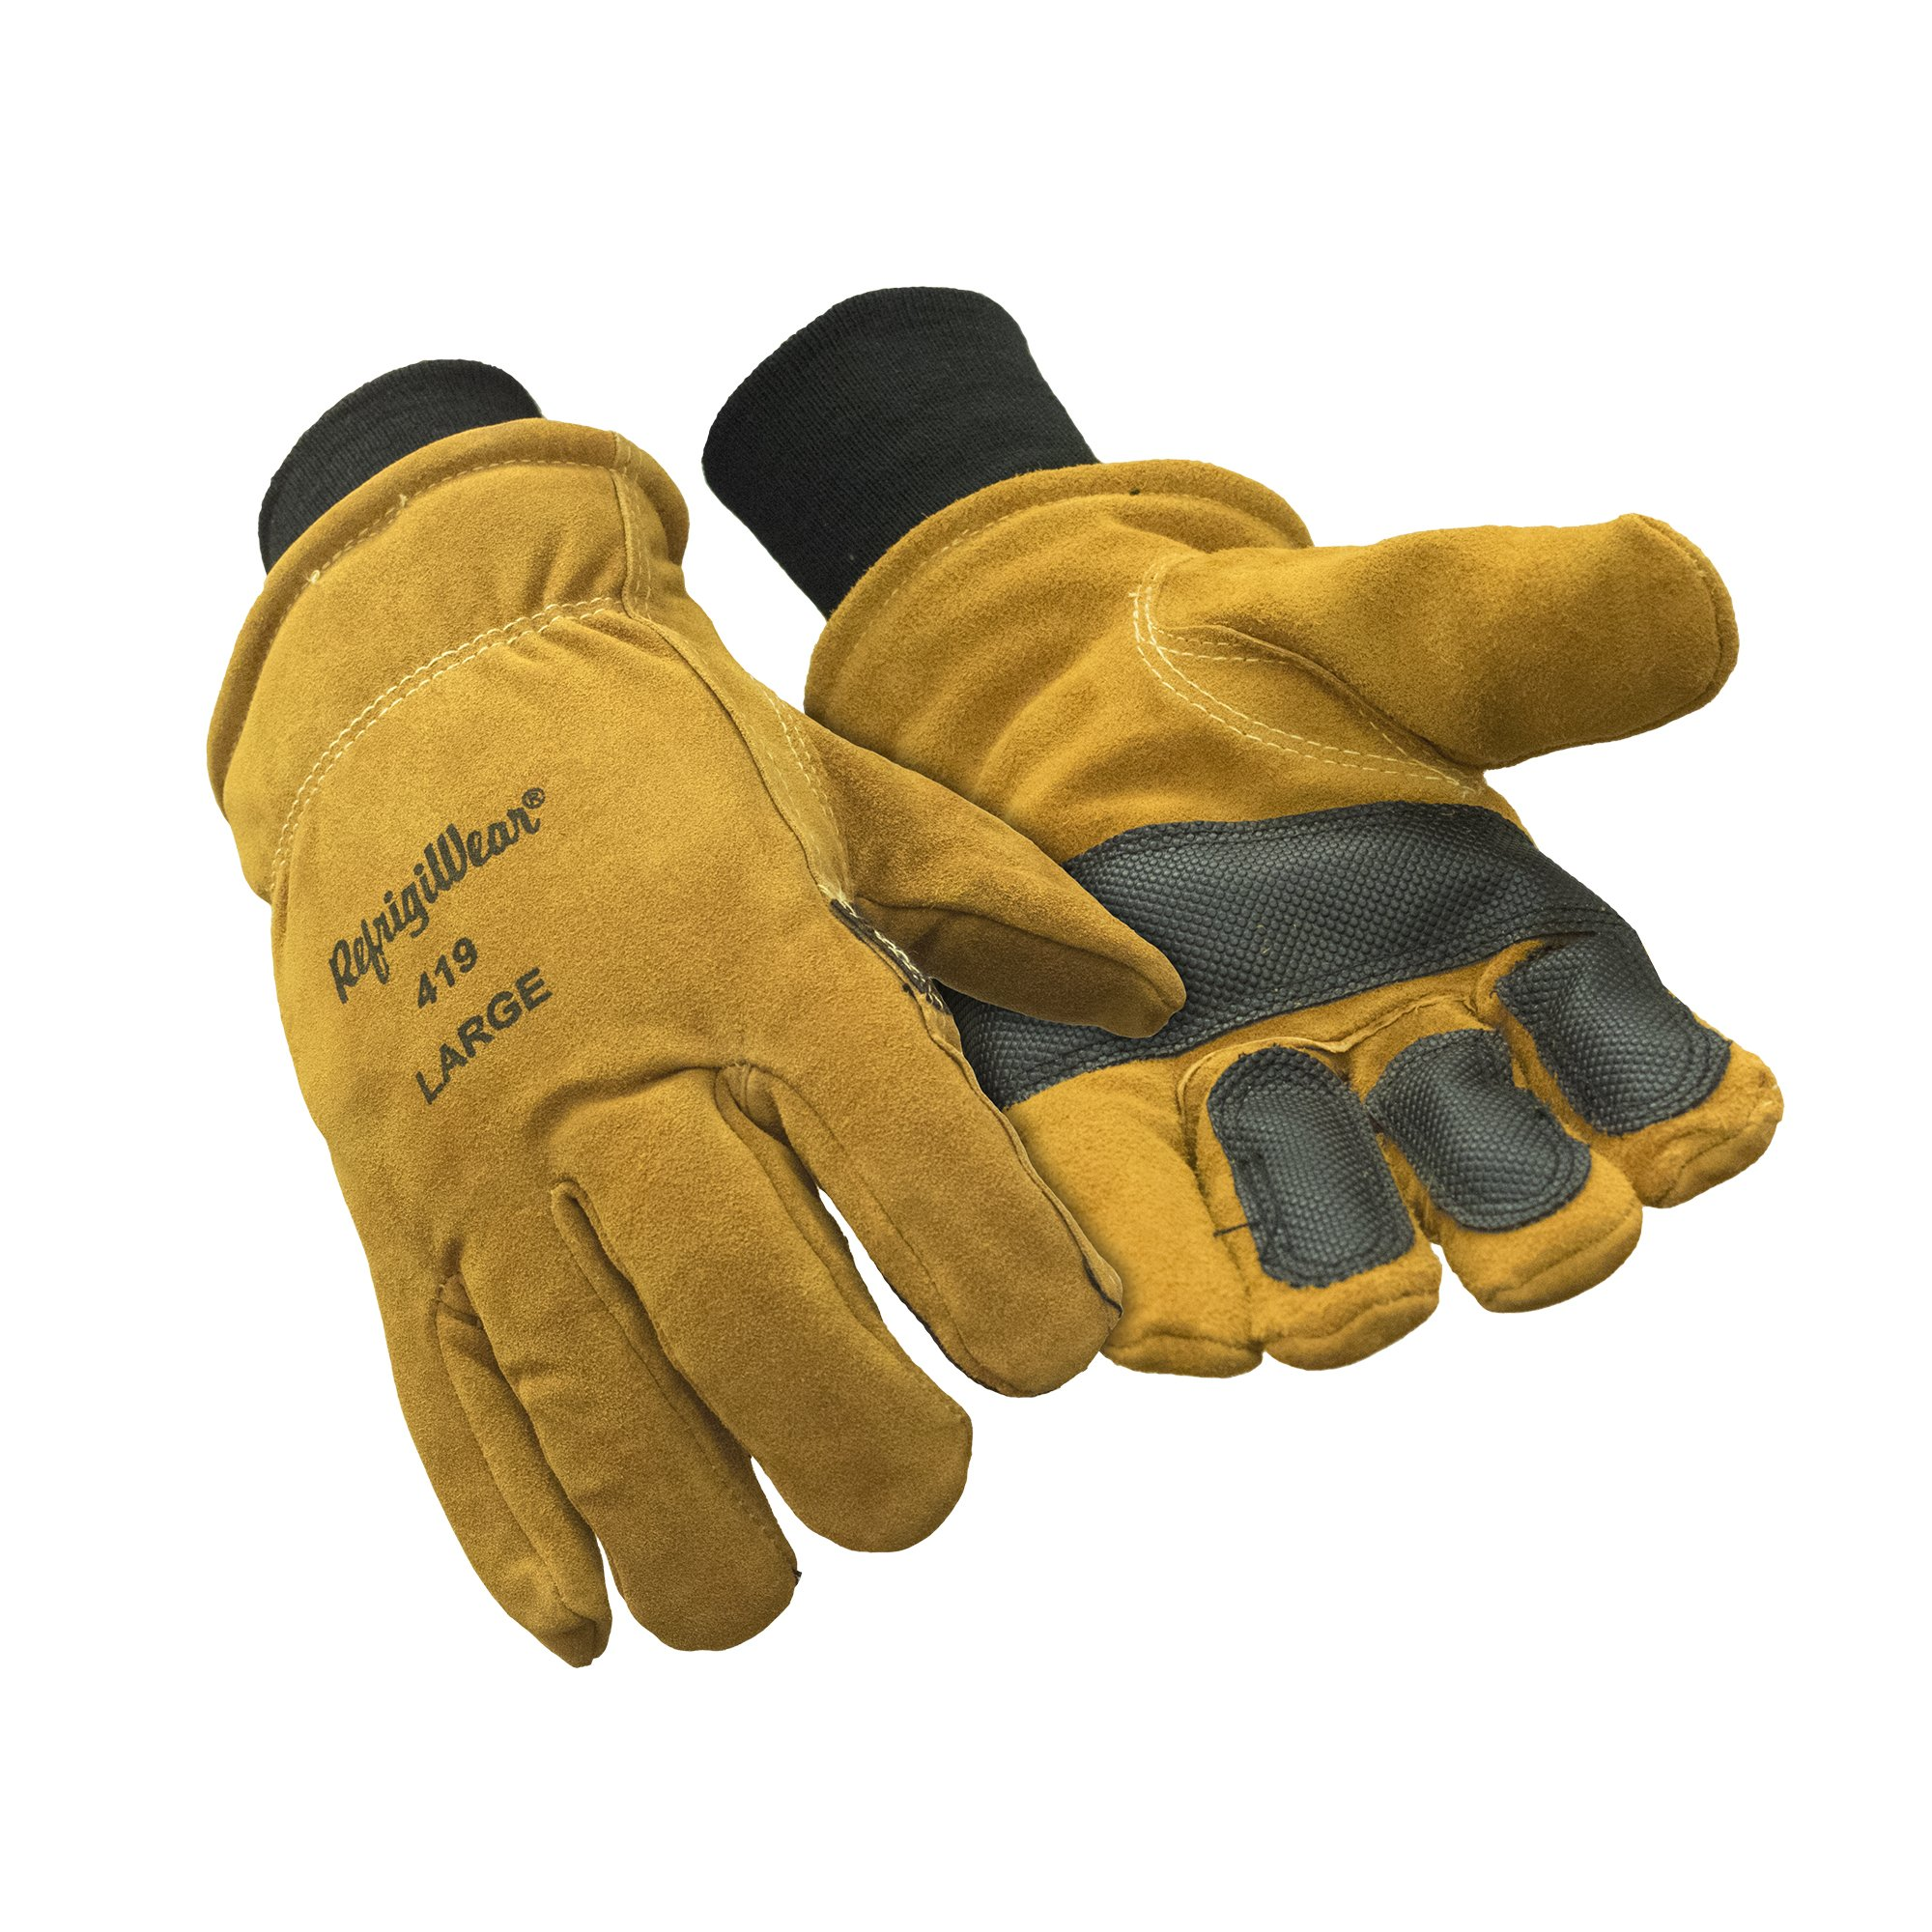 RefrigiWear Double Insulated Cowhide Leather Gloves, Gold Large